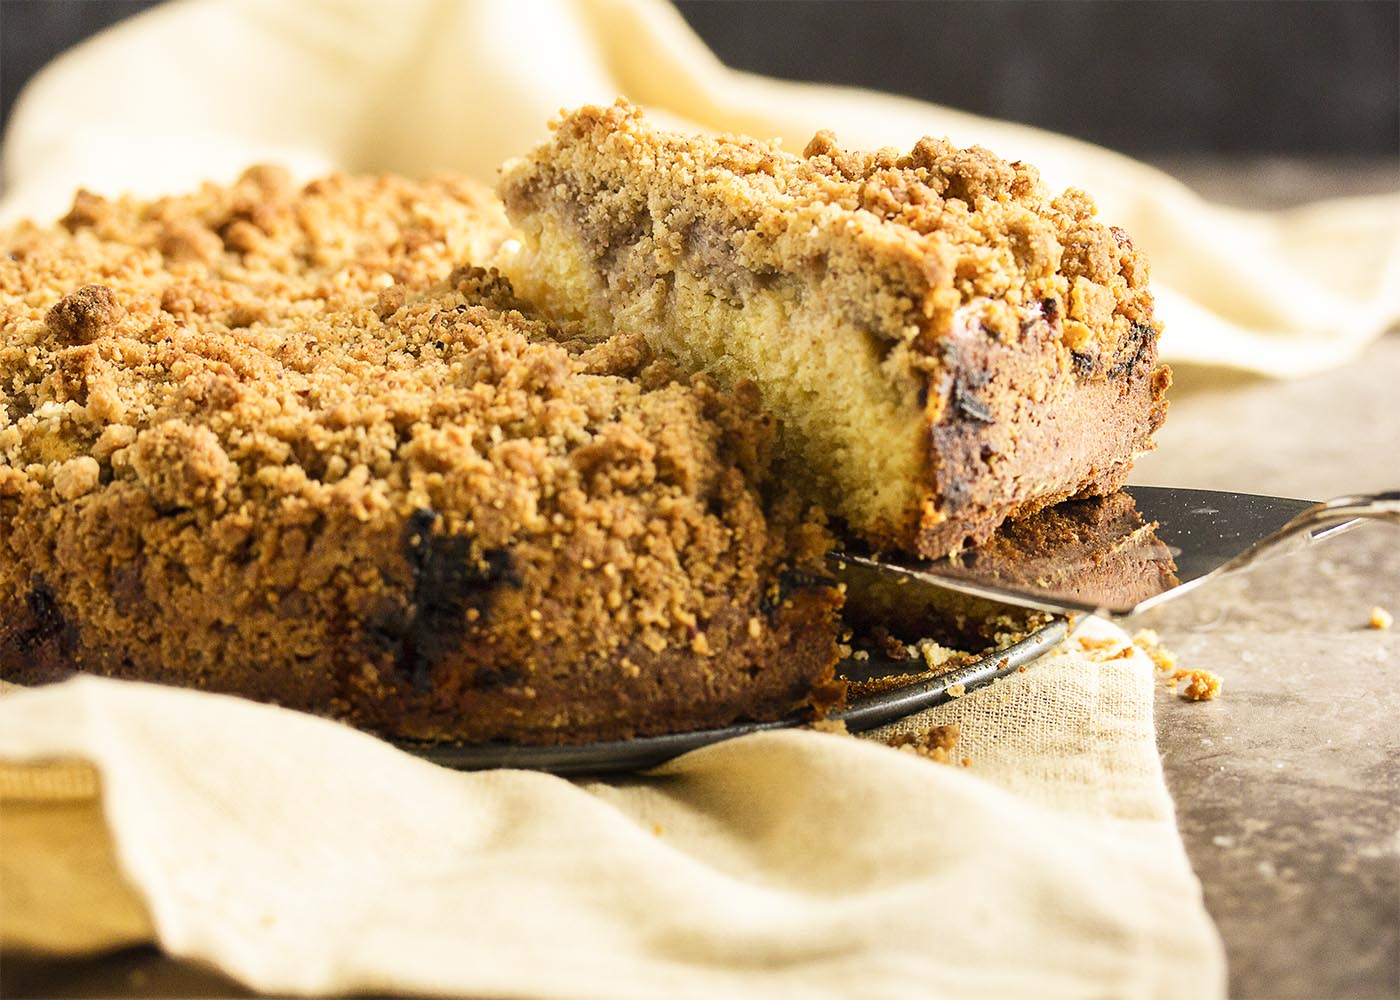 Rhubarb Coffee Cake with Crumb Topping - Spring is here with this rhubarb coffee cake, which has a tart layer of rhubarb sandwiched between soft cake on the bottom and crumb topping above. A little sweet, a little tart, and all yummy! | justalittlebitofbacon.com